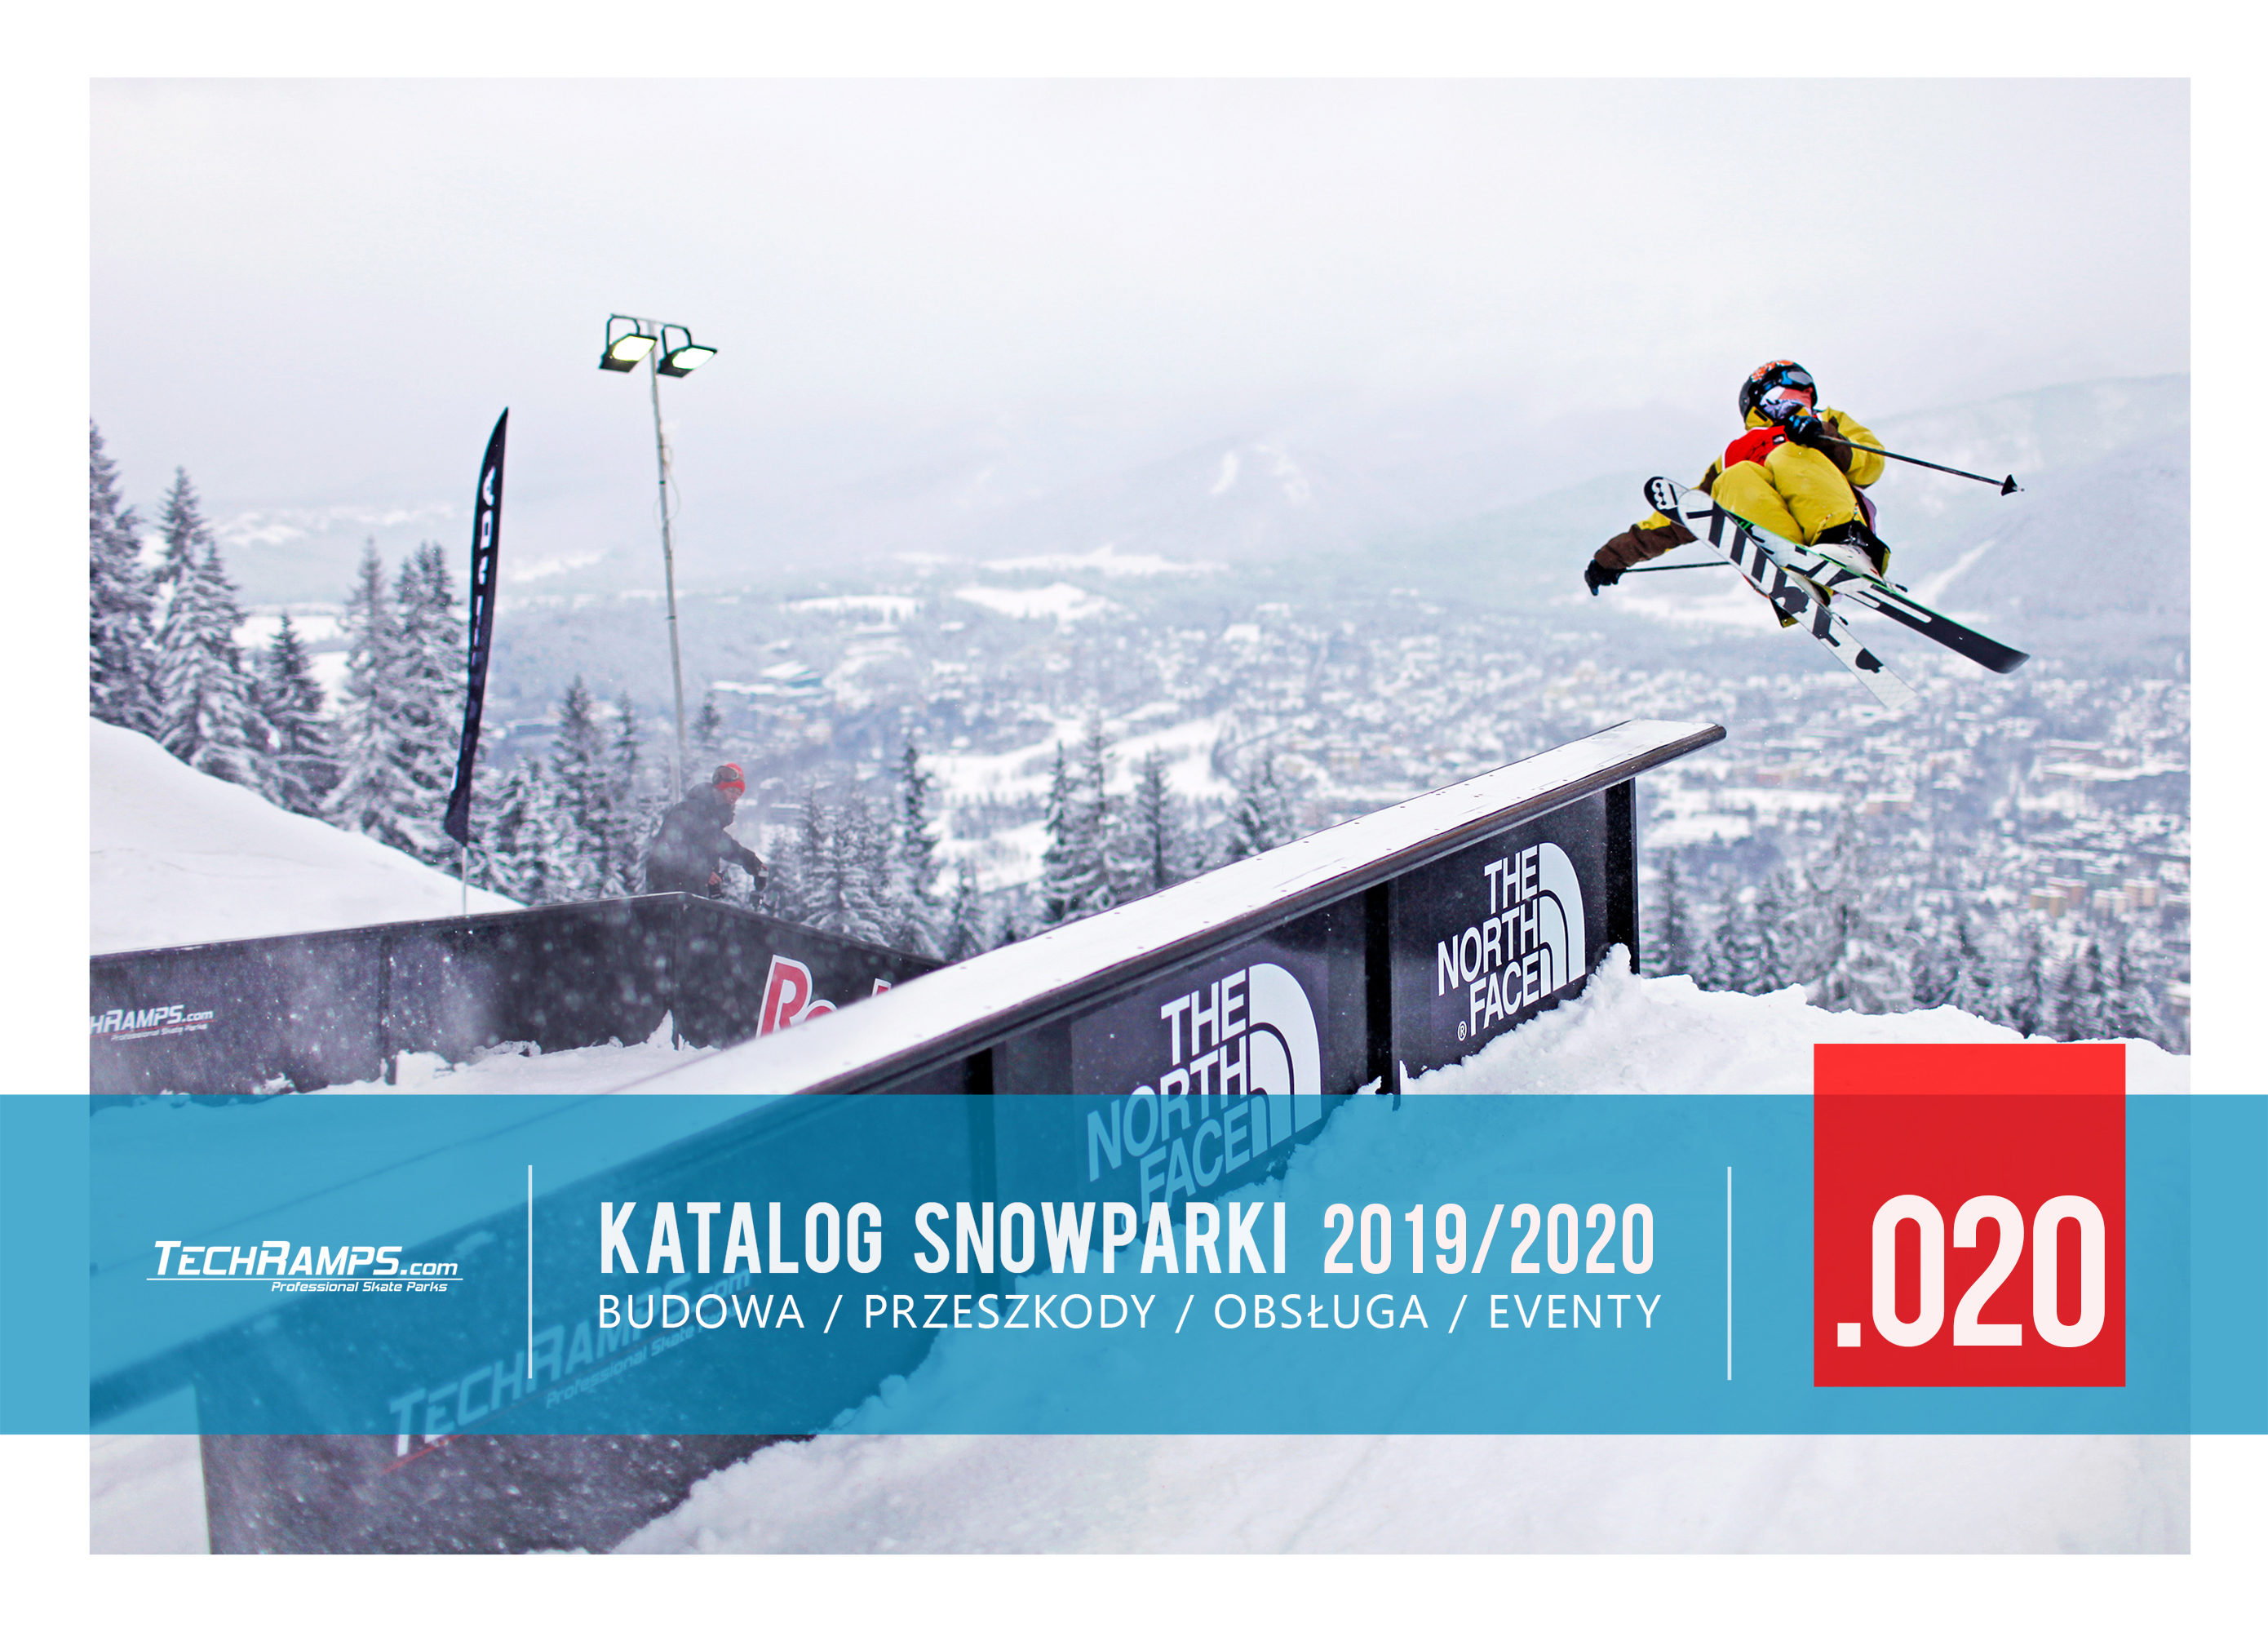 Snowpark Katalog Techramps Snow